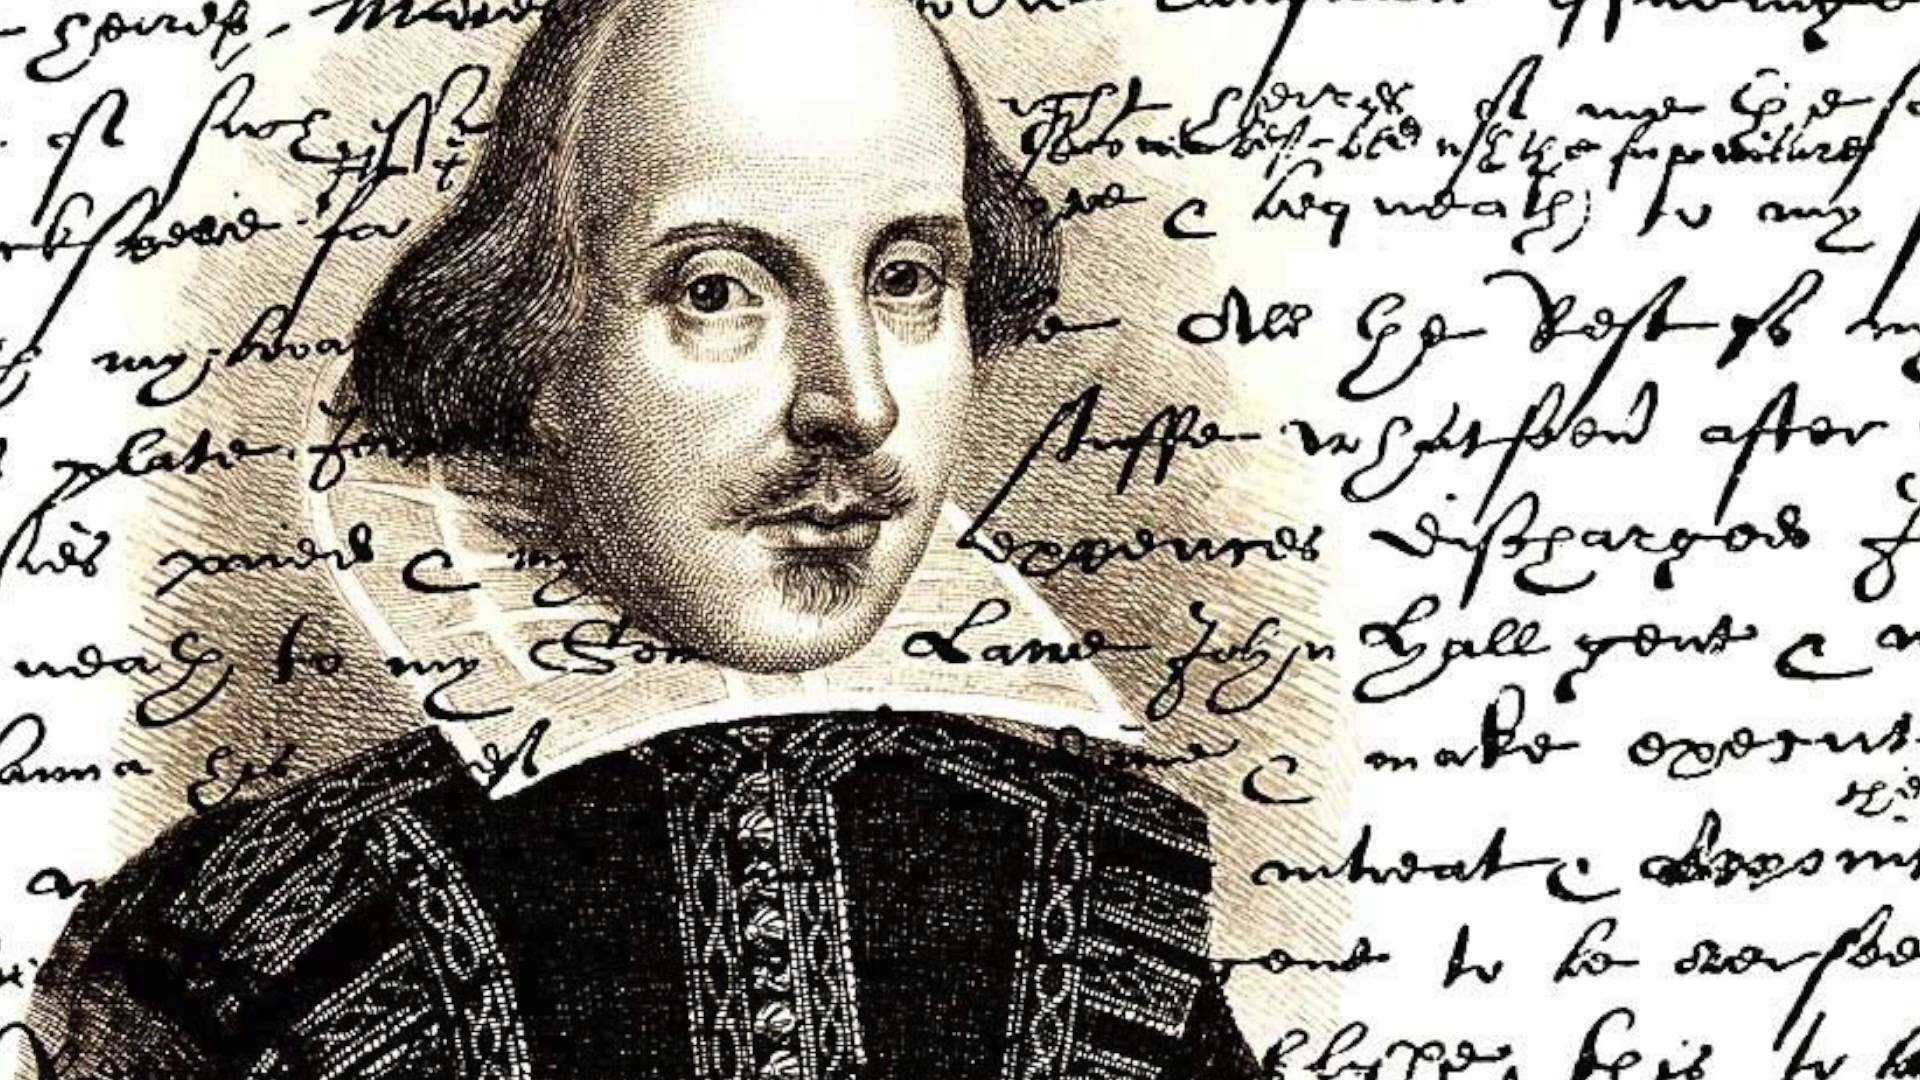 i hate shakespeare youth are awesome featured image source